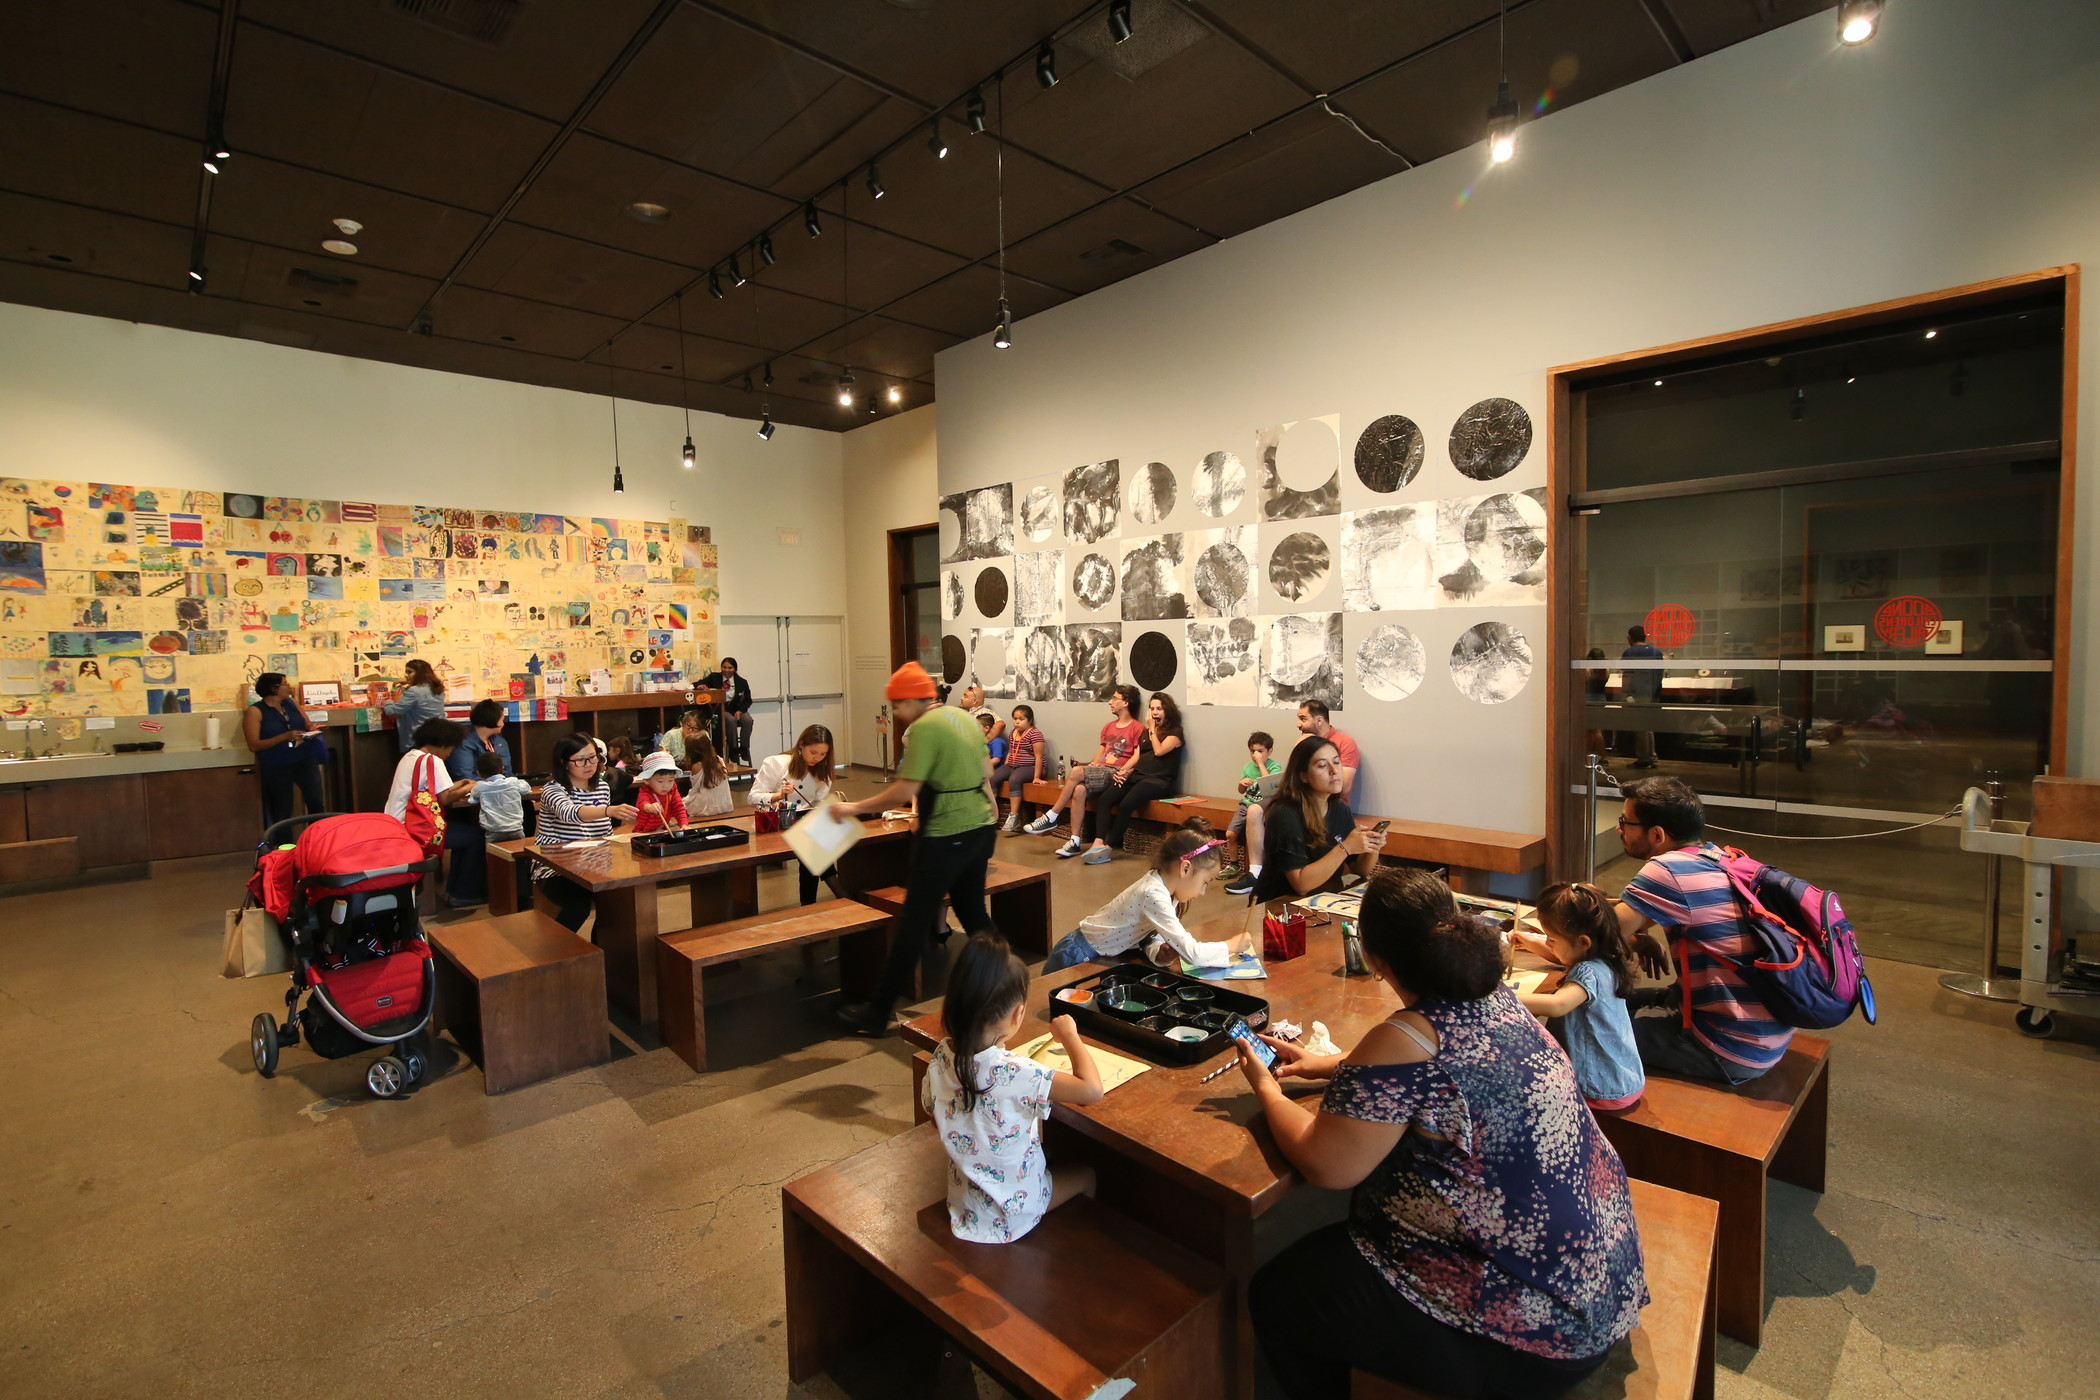 Families making art together in the Boone Children's Gallery, photo © Museum Associates/LACMA, by Brant Brogan